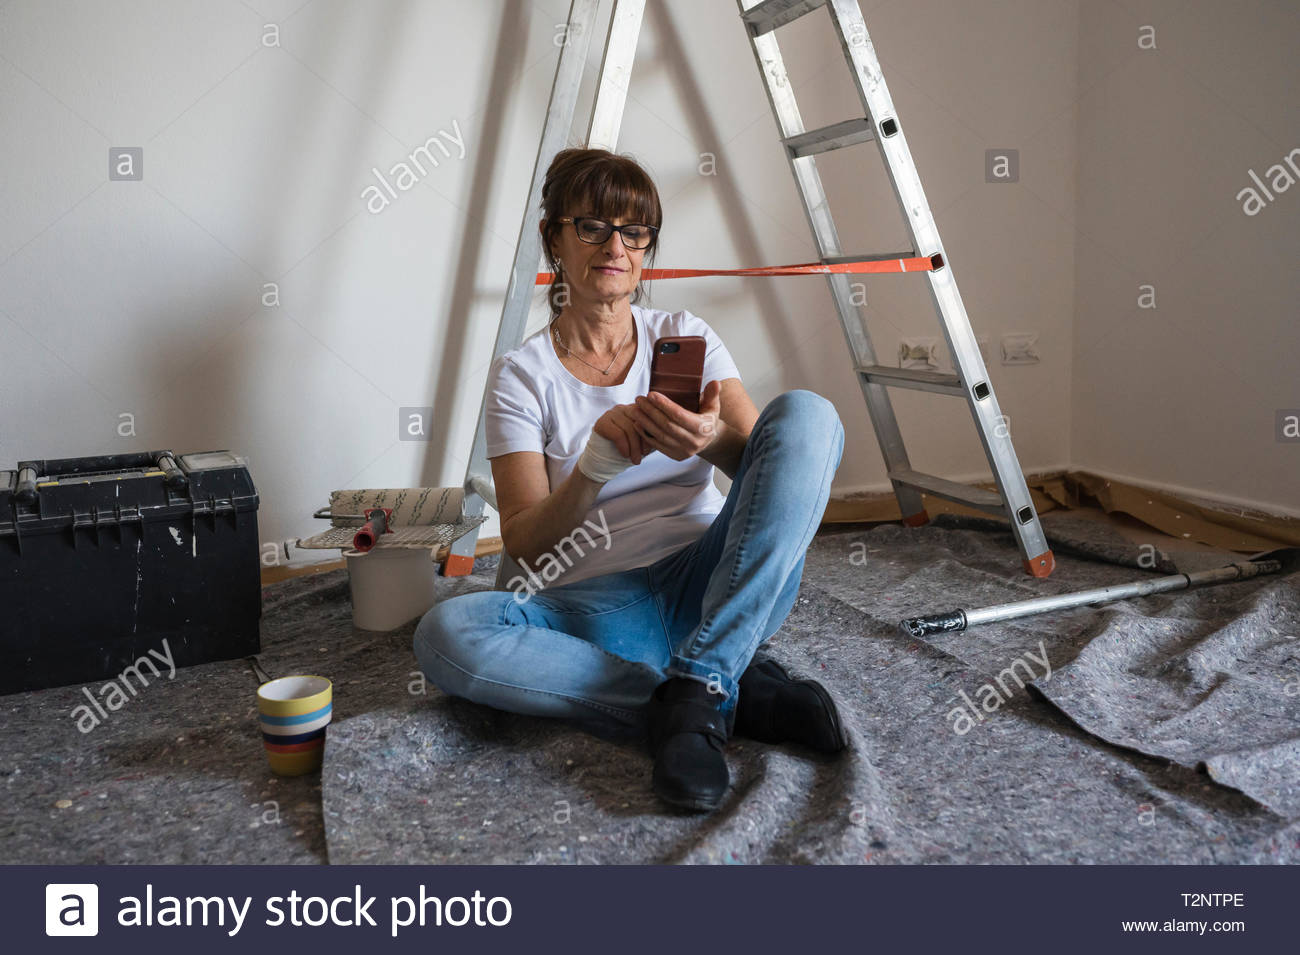 Senior woman decorating house interior sitting on floor looking at smartphone - Stock Image